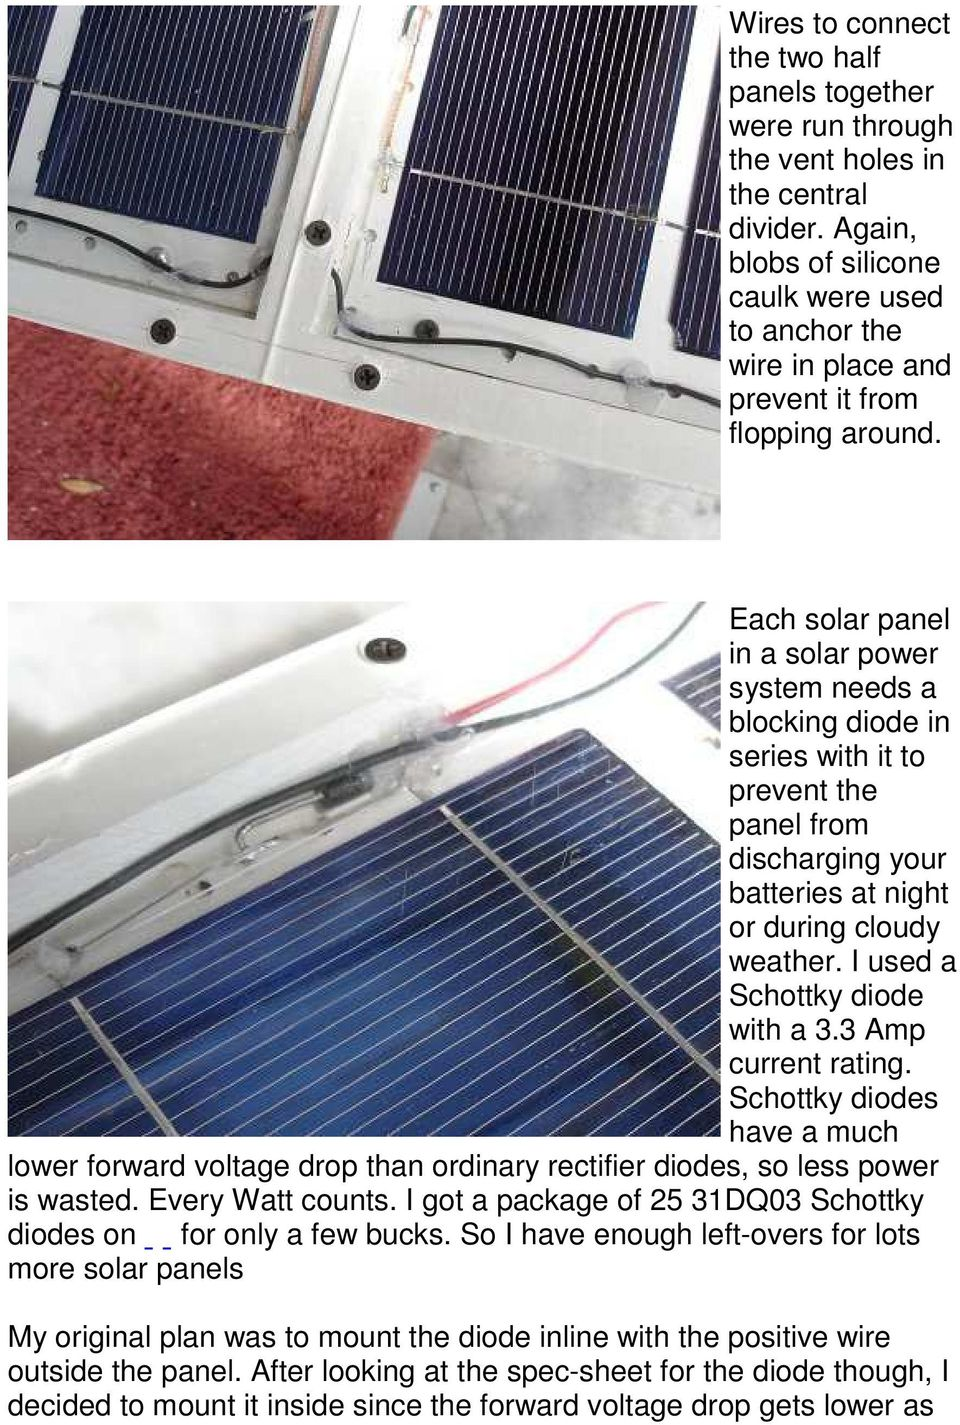 Each solar panel in a solar power system needs a blocking diode in series with it to prevent the panel from discharging your batteries at night or during cloudy weather.